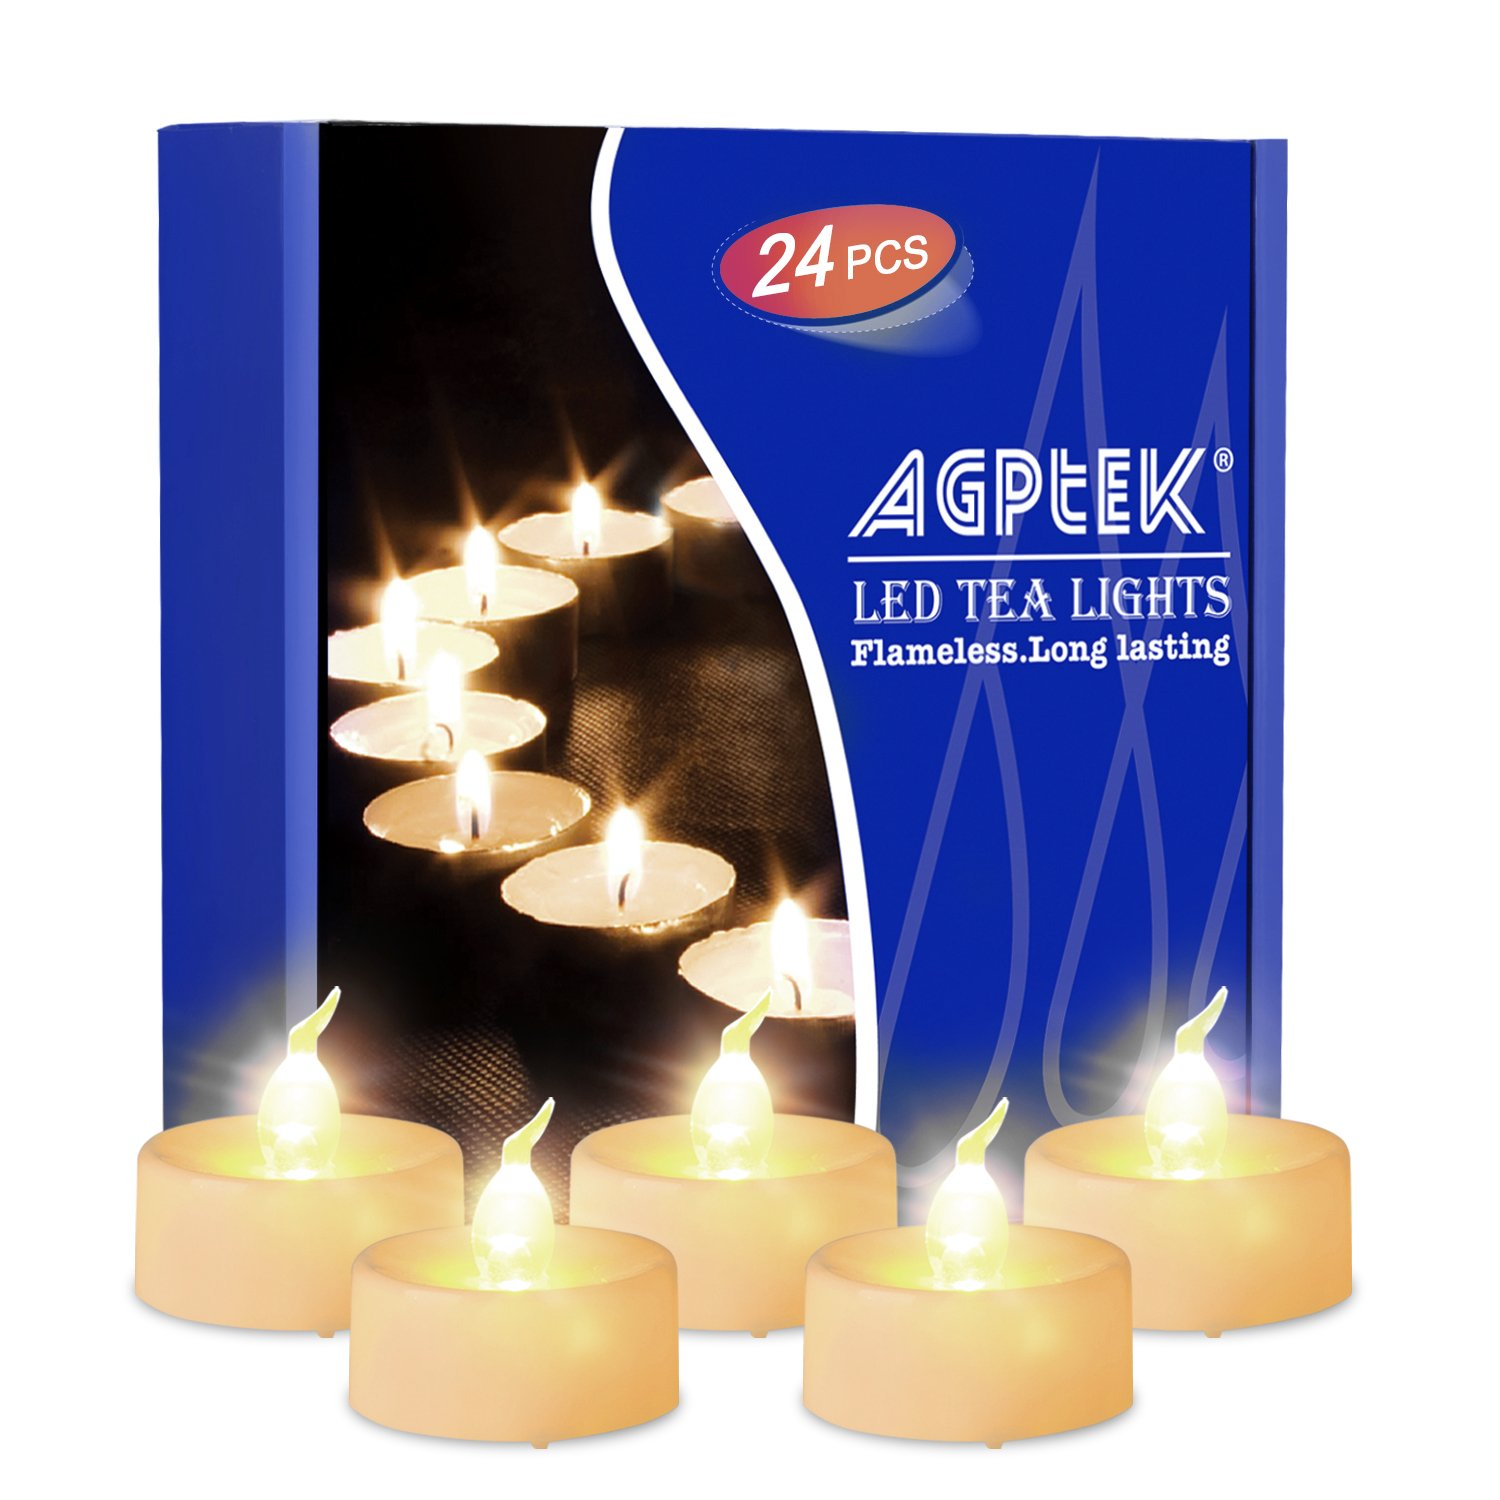 AGPTEK Timer Flickering Tea Lights 24 Pack Flickering LED Candles with Timer Battery Operated Flameless Tealight Candles for Wedding Holiday Party Home Decoration Warm White by AGPTEK